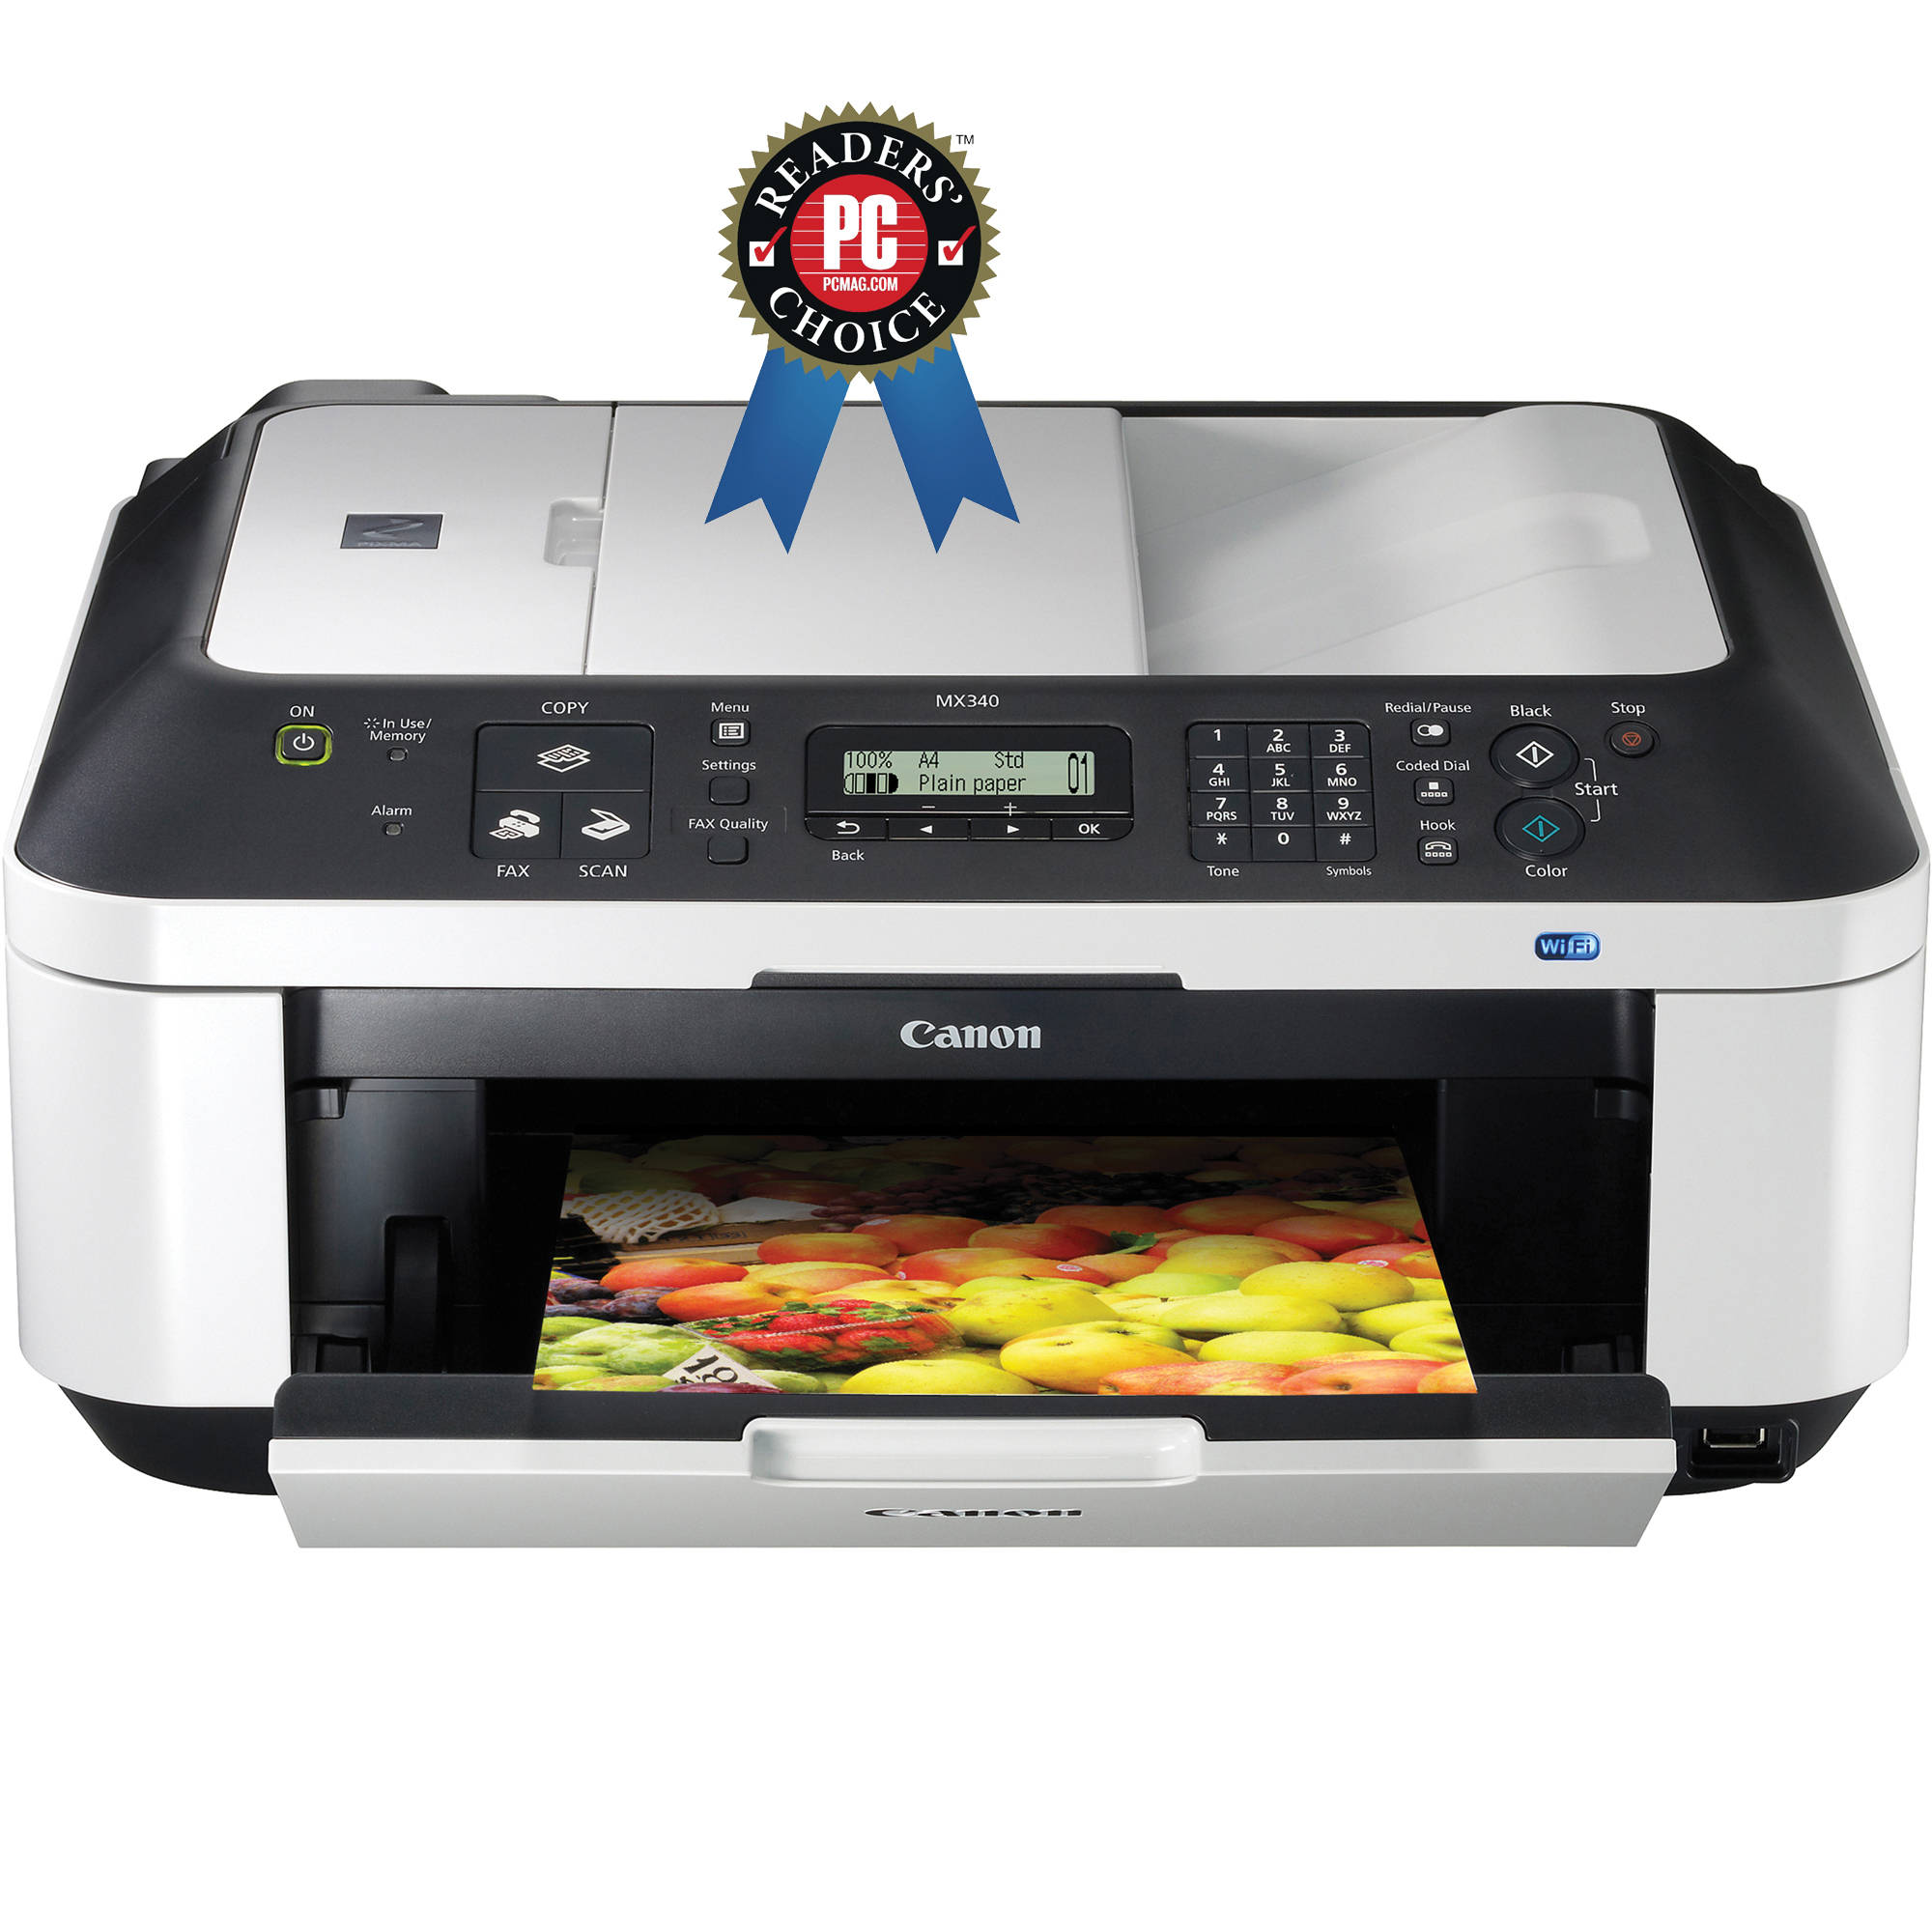 canon pixma mx340 wireless all in one photo printer 4204b019 b h rh bhphotovideo com Canon MX340 Manual PDF Canon MX340 Manual PDF